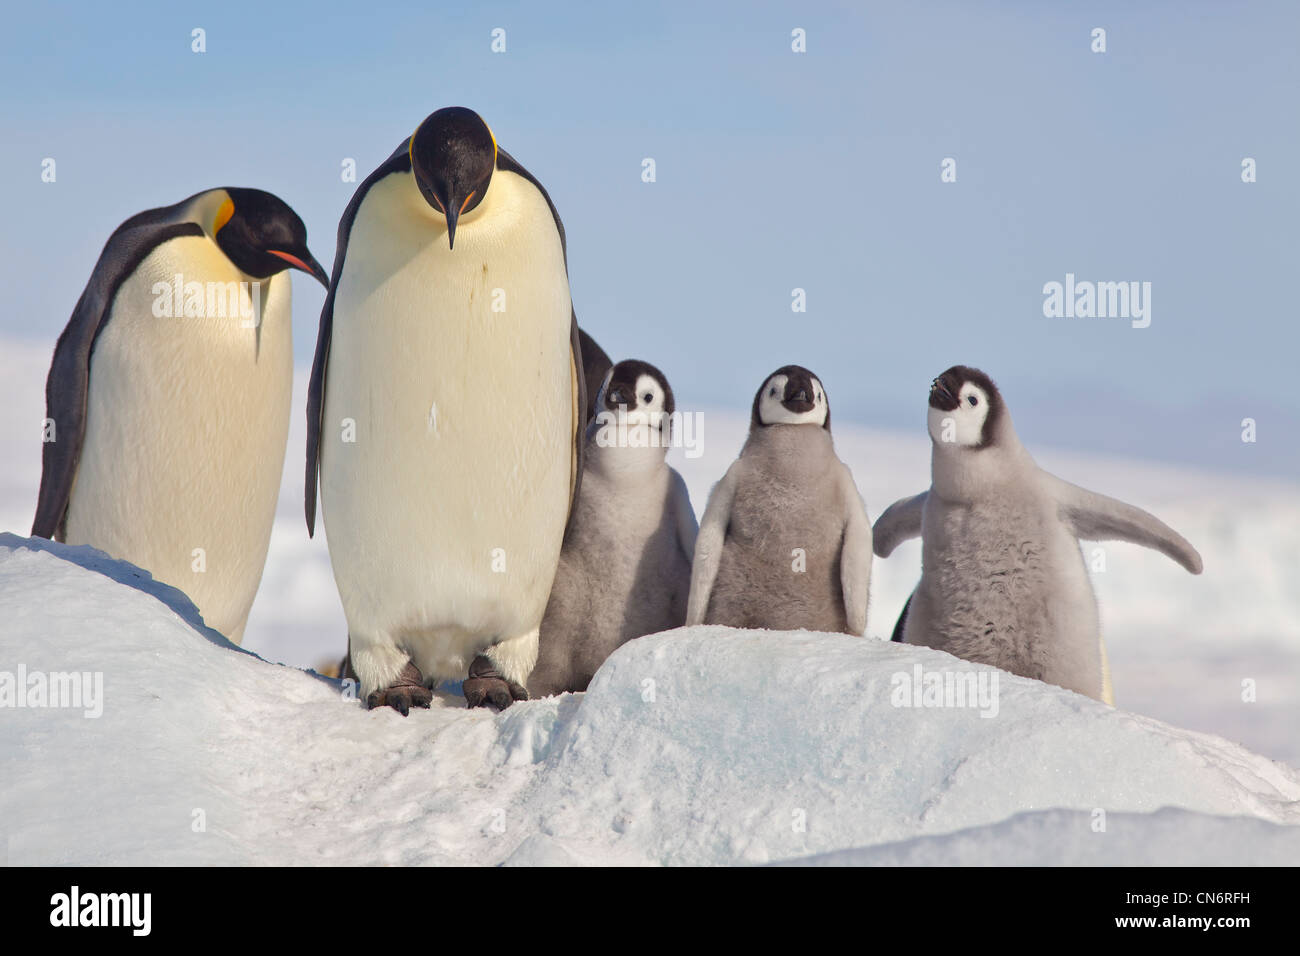 Emperor penguins with chicks - Stock Image